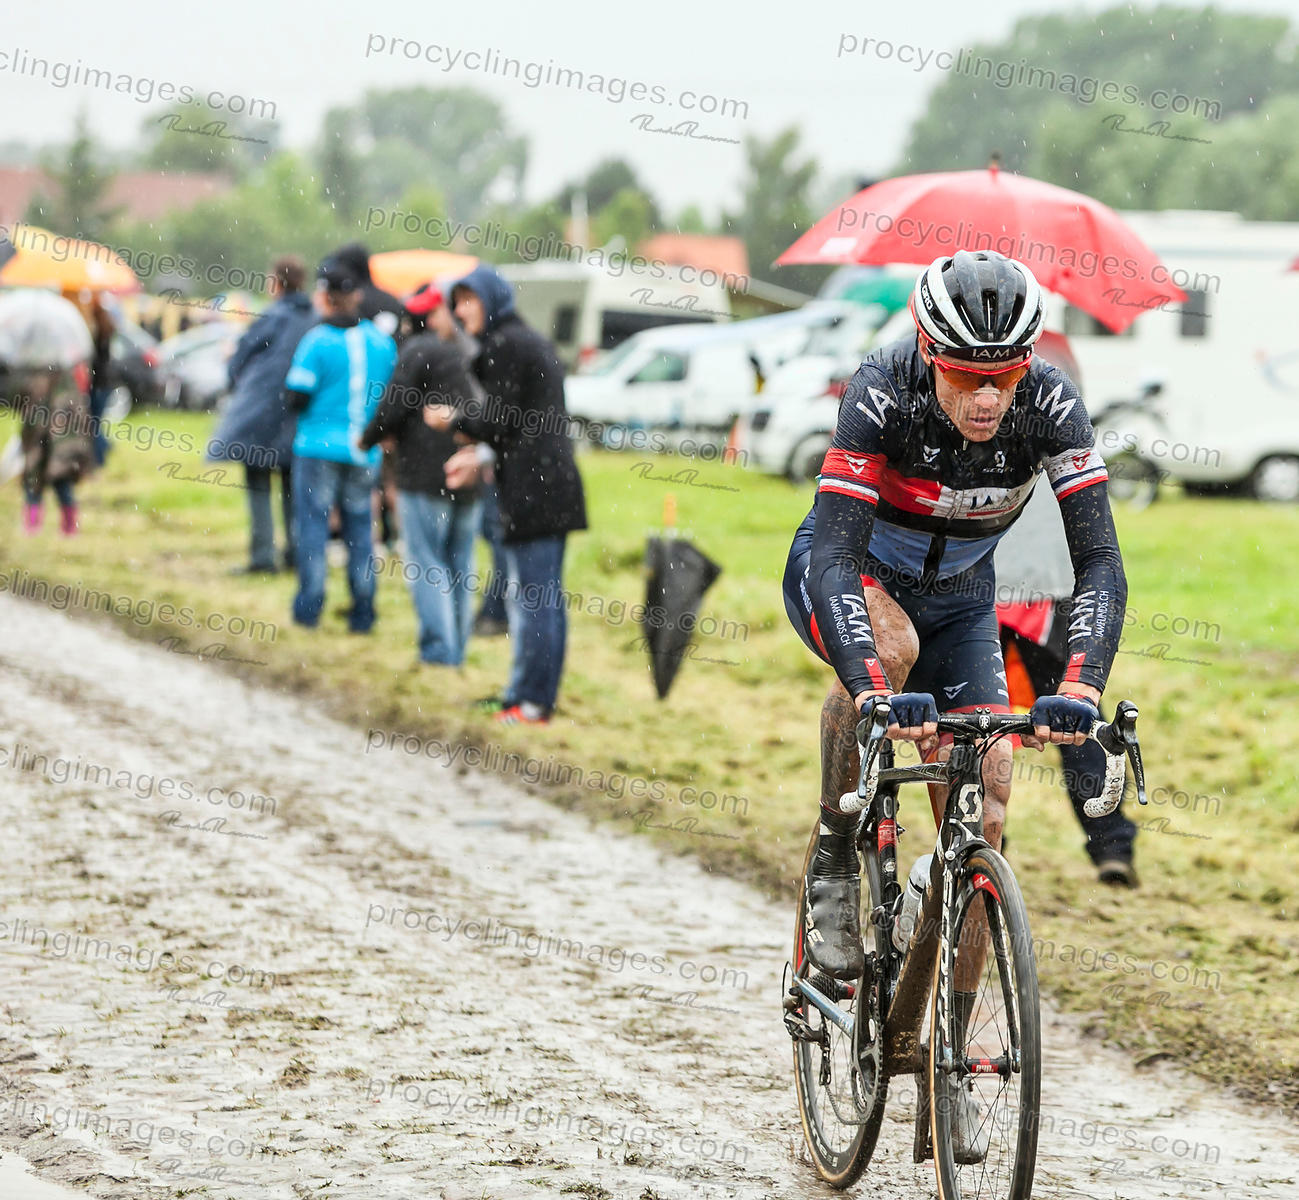 The Cyclist Sylvain Chavanel on a Cobbled Road - Tour de France 2014